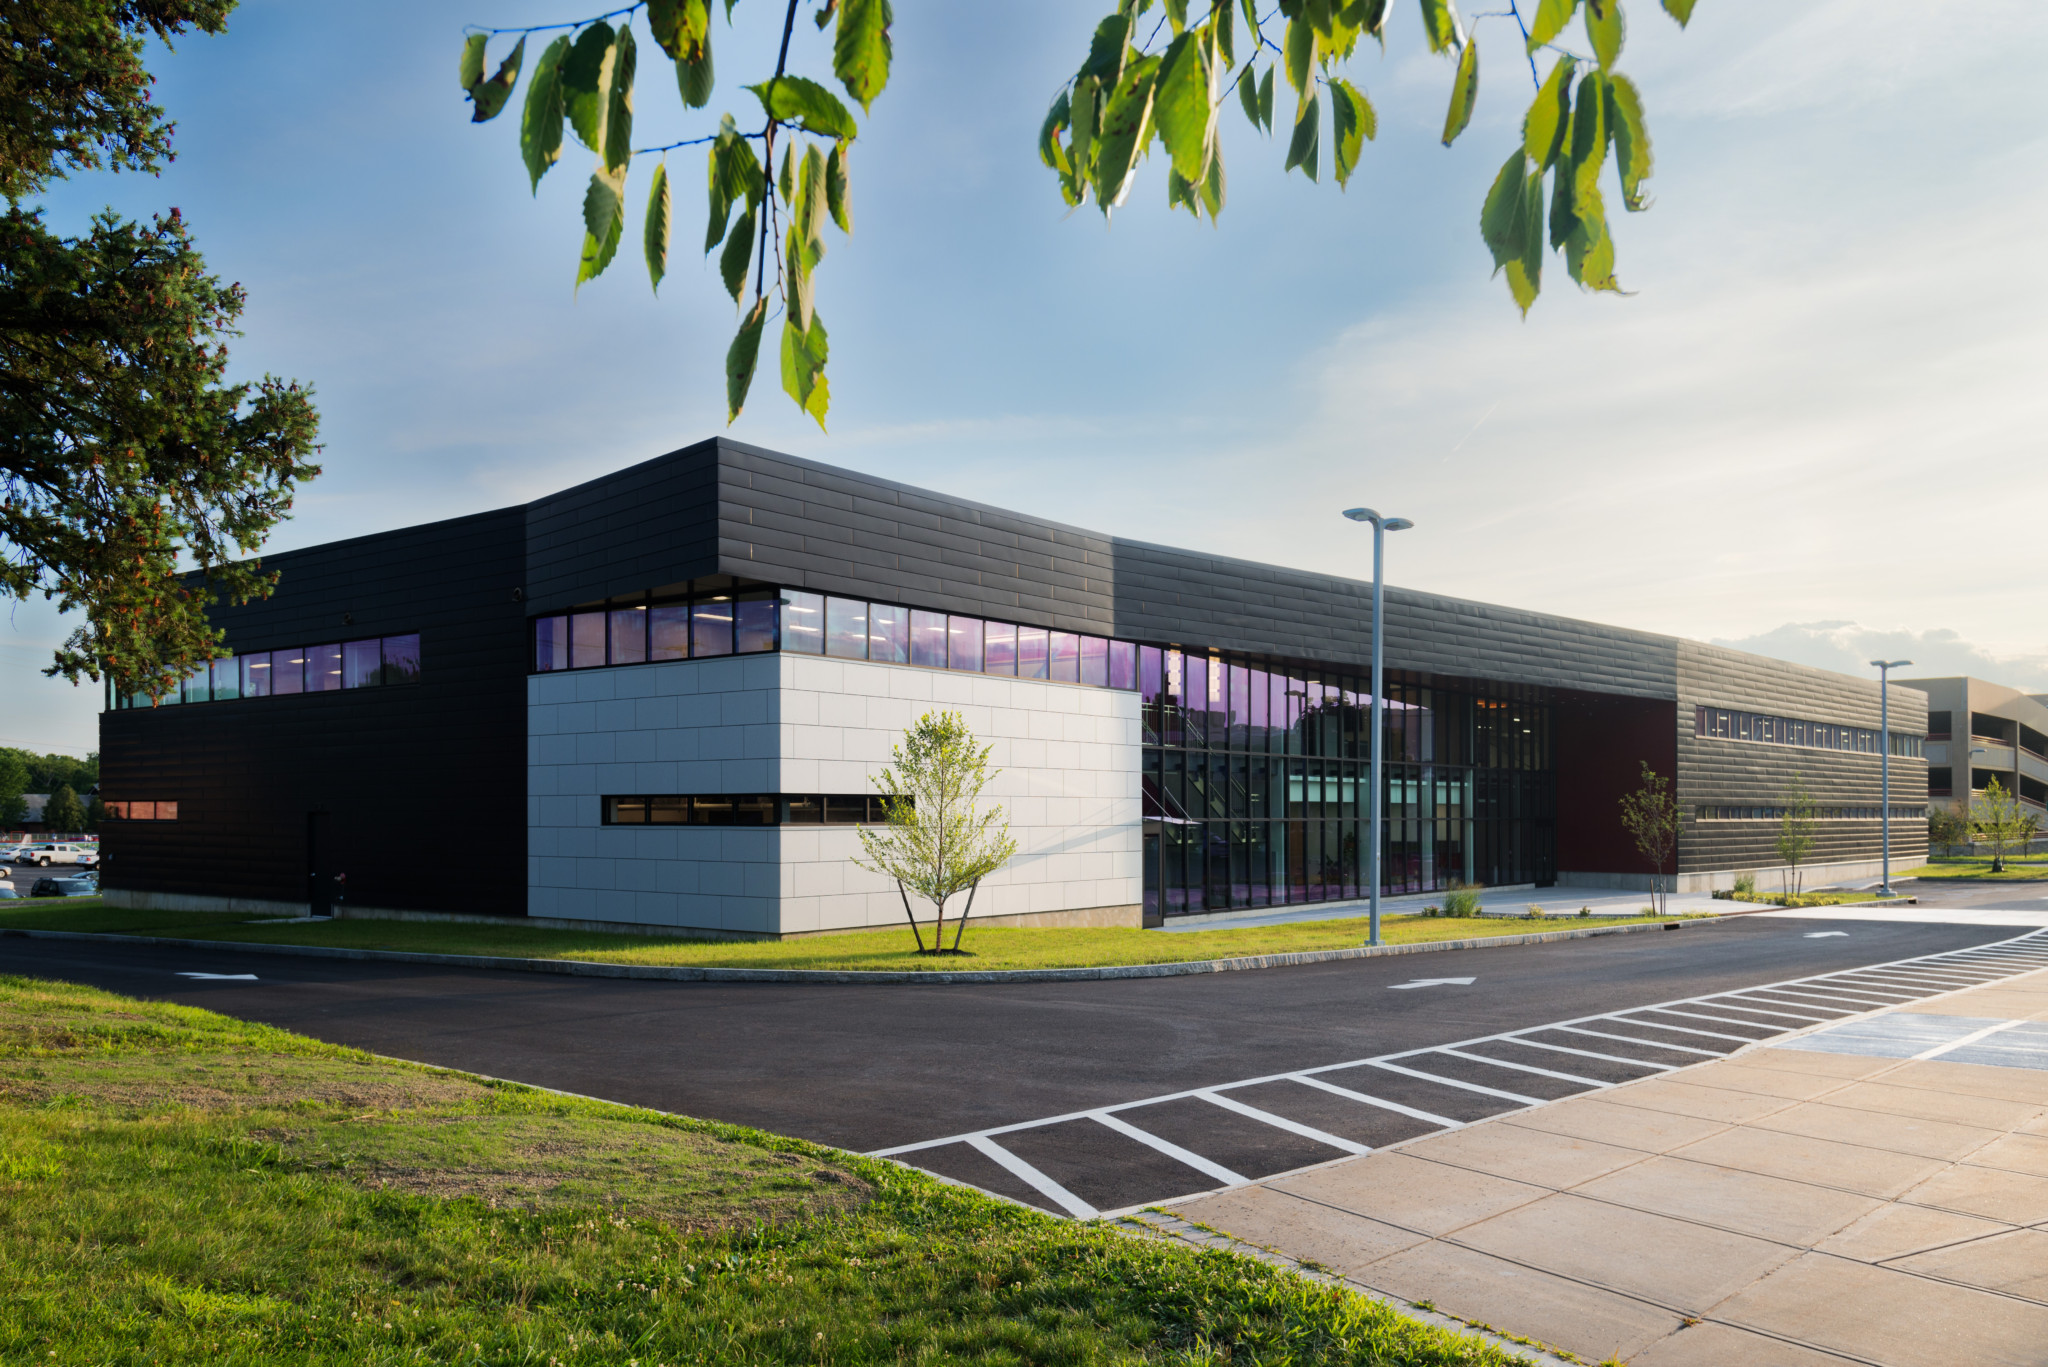 HVCC, Gene Haas Center for Advanced Manufacturing Skills